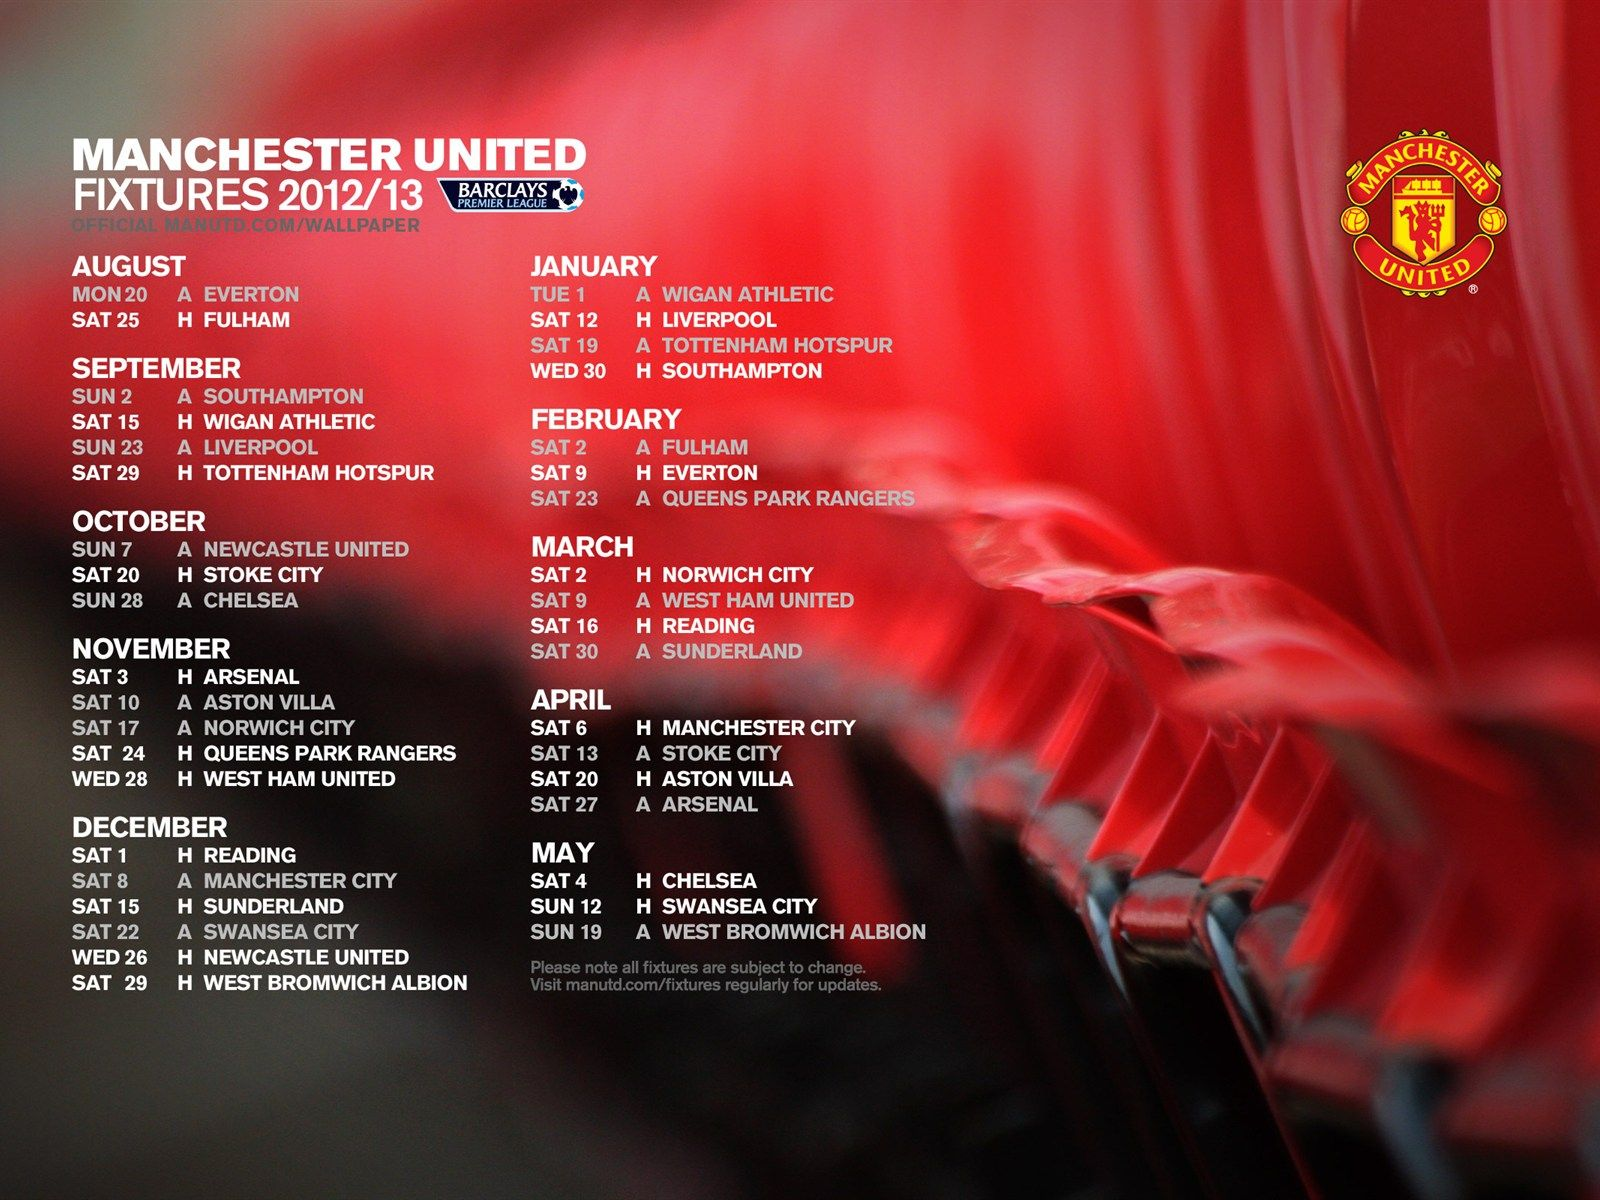 Manchester United Fixtures 2012 2013 Manchester United Wigan Athletic Official Manchester United Website